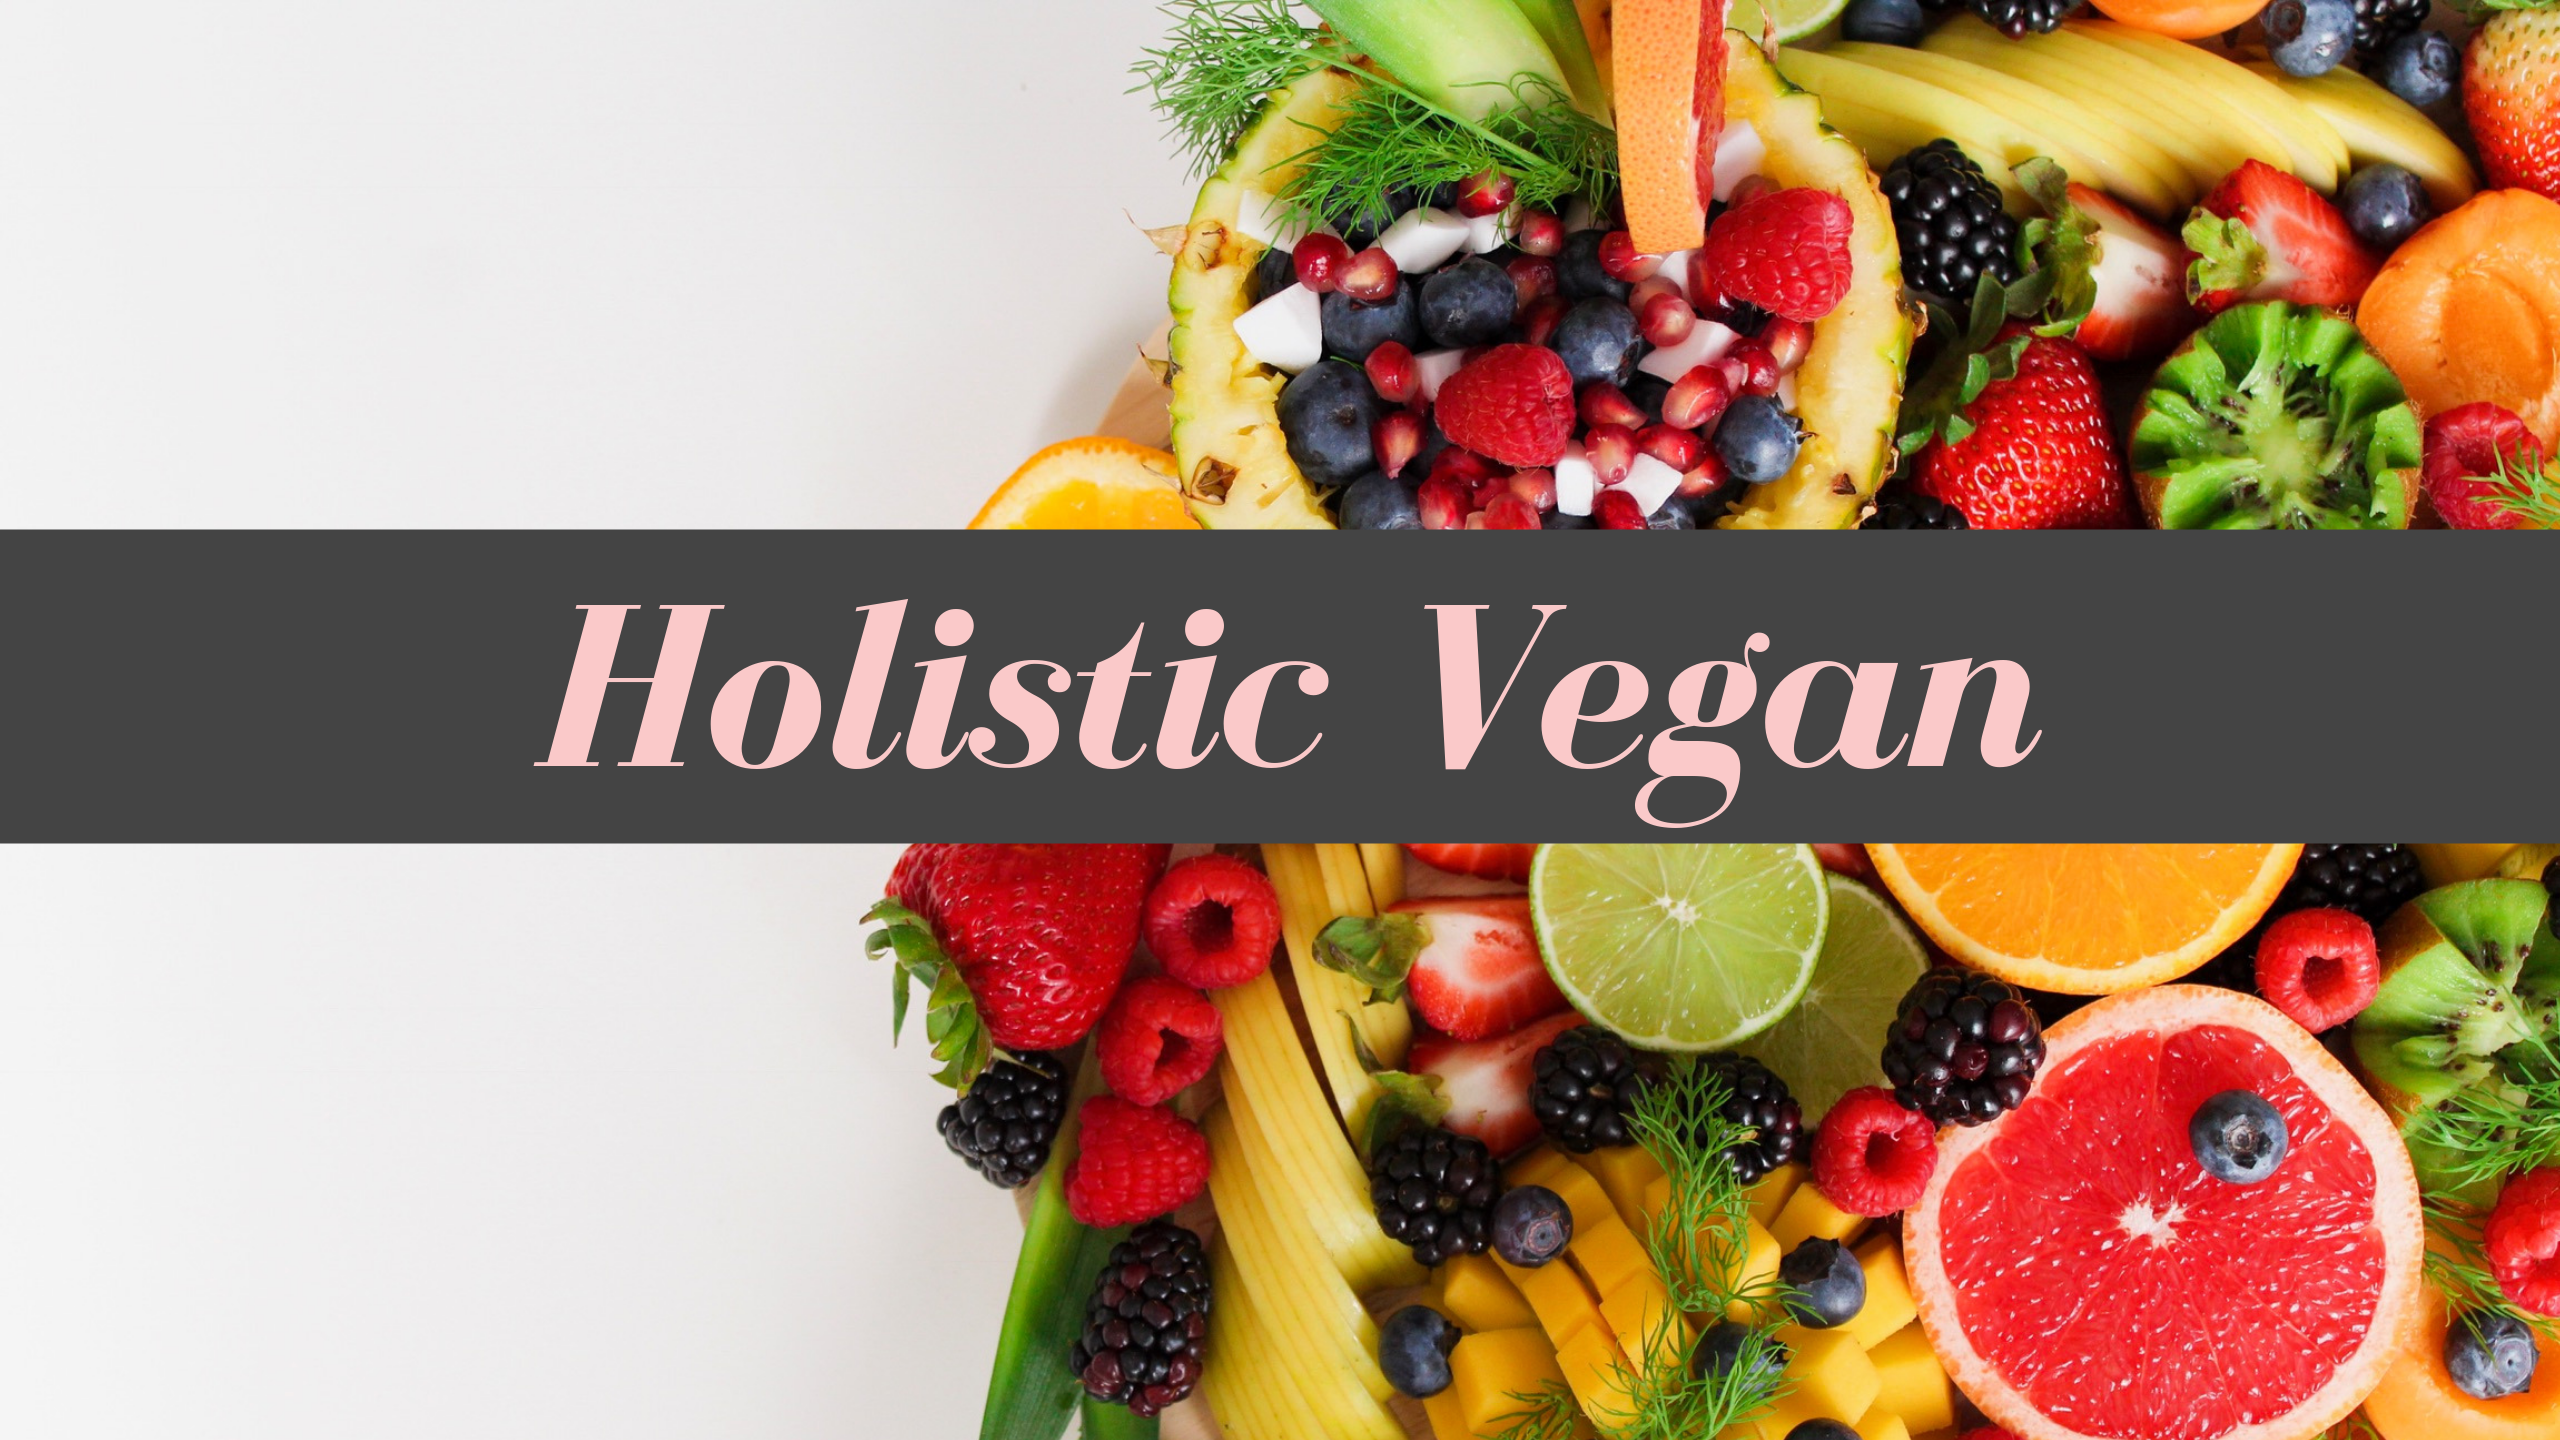 Holistic Vegan